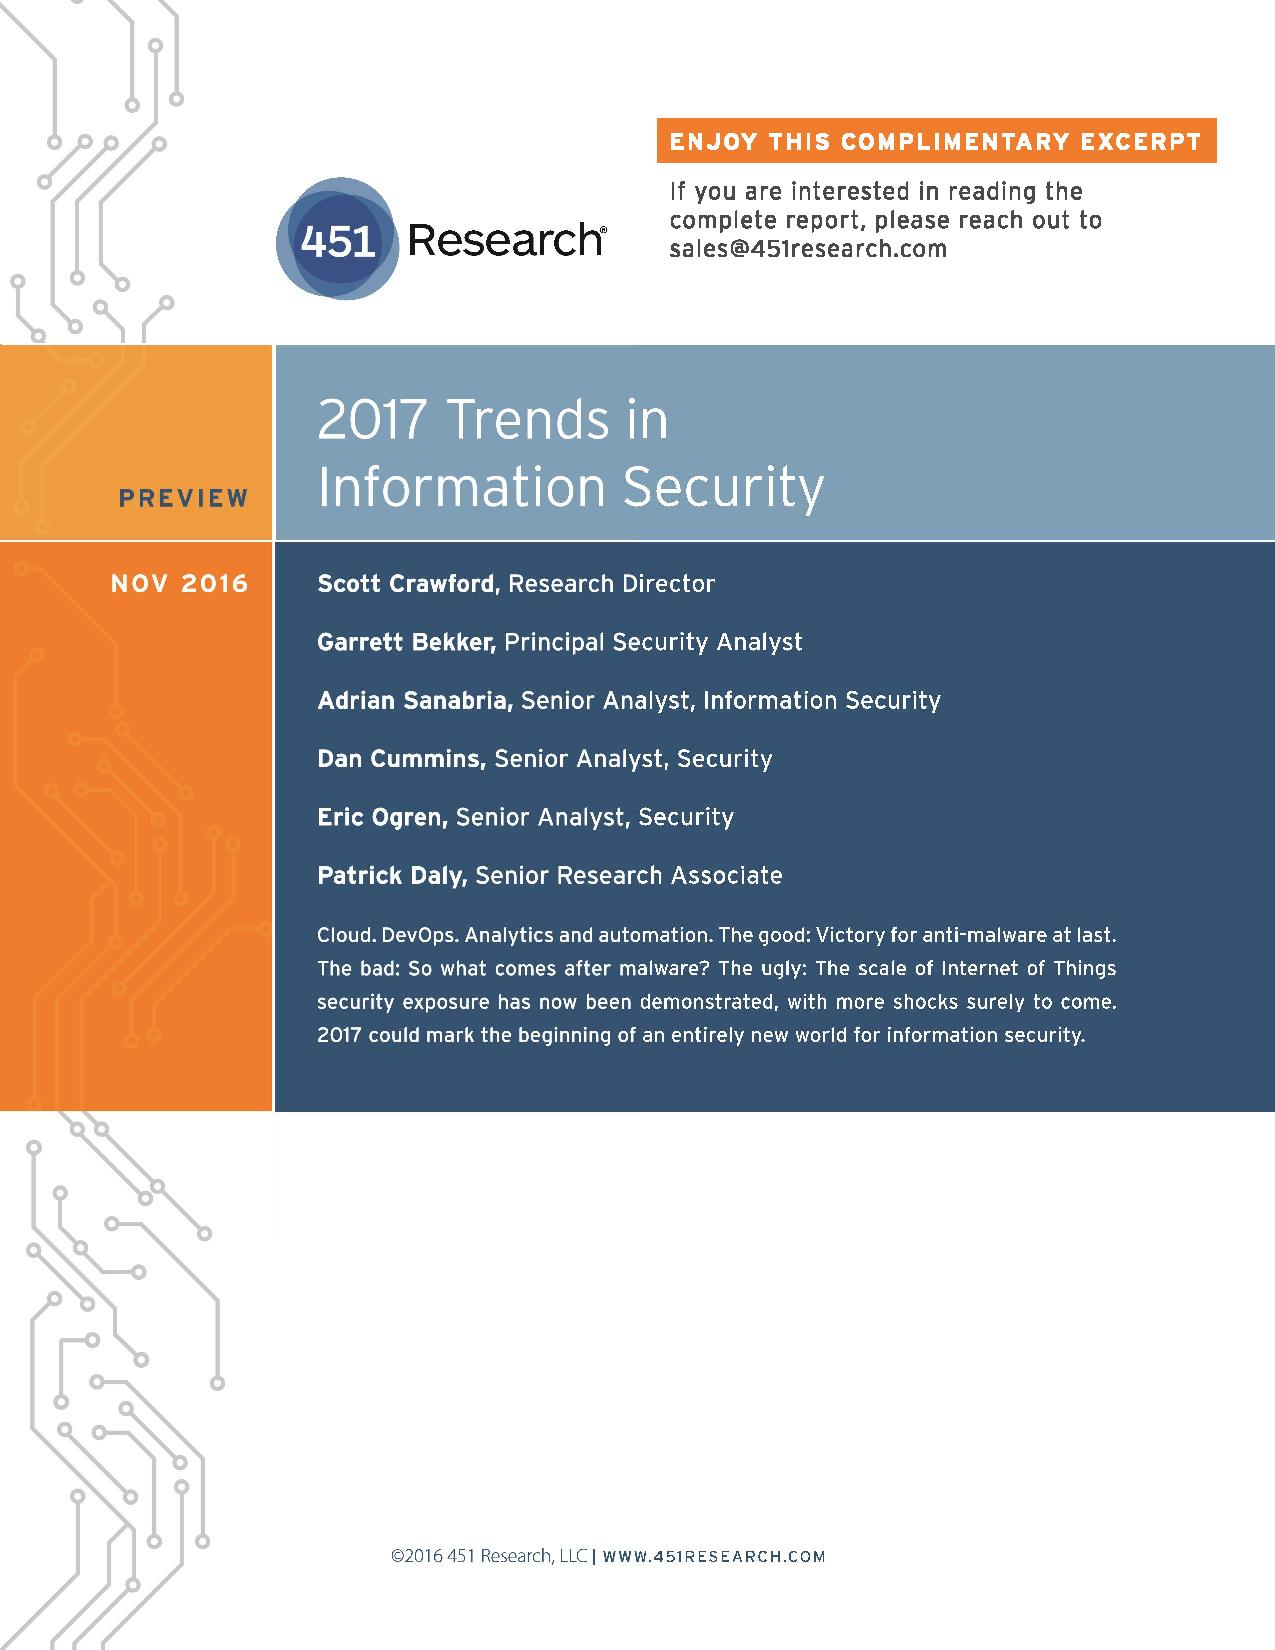 Schön Bad Trends 2017 Das Beste Von Rmation Security - 451 Research - Analyzing